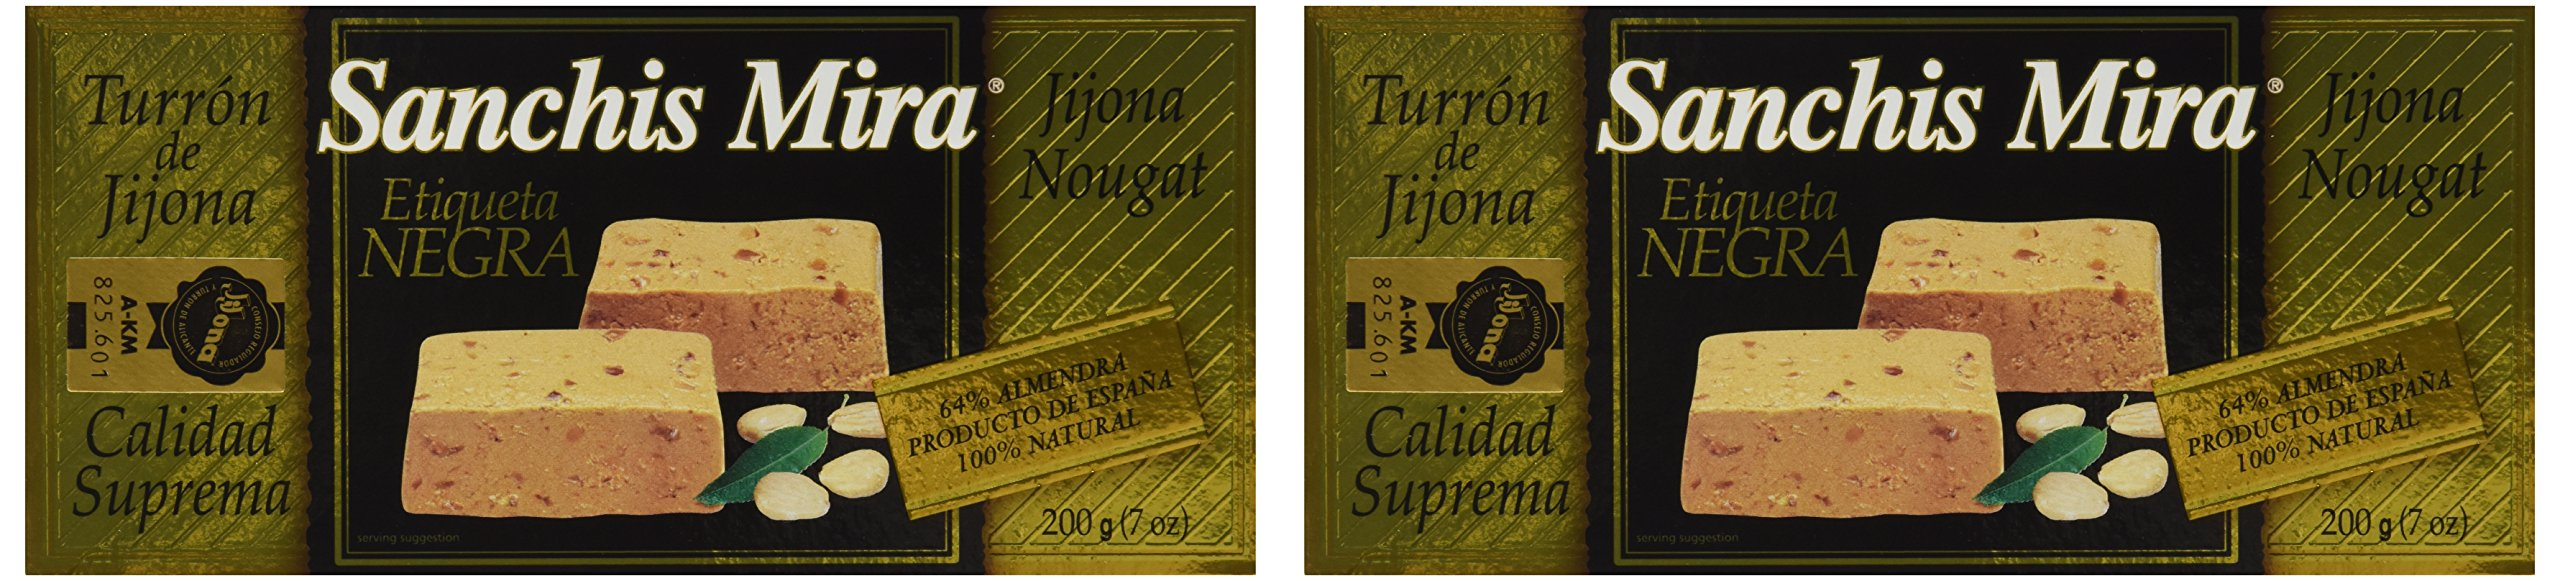 Sanchis Mira Turron Jijona 200 grs (7oz.) - Pack of 2